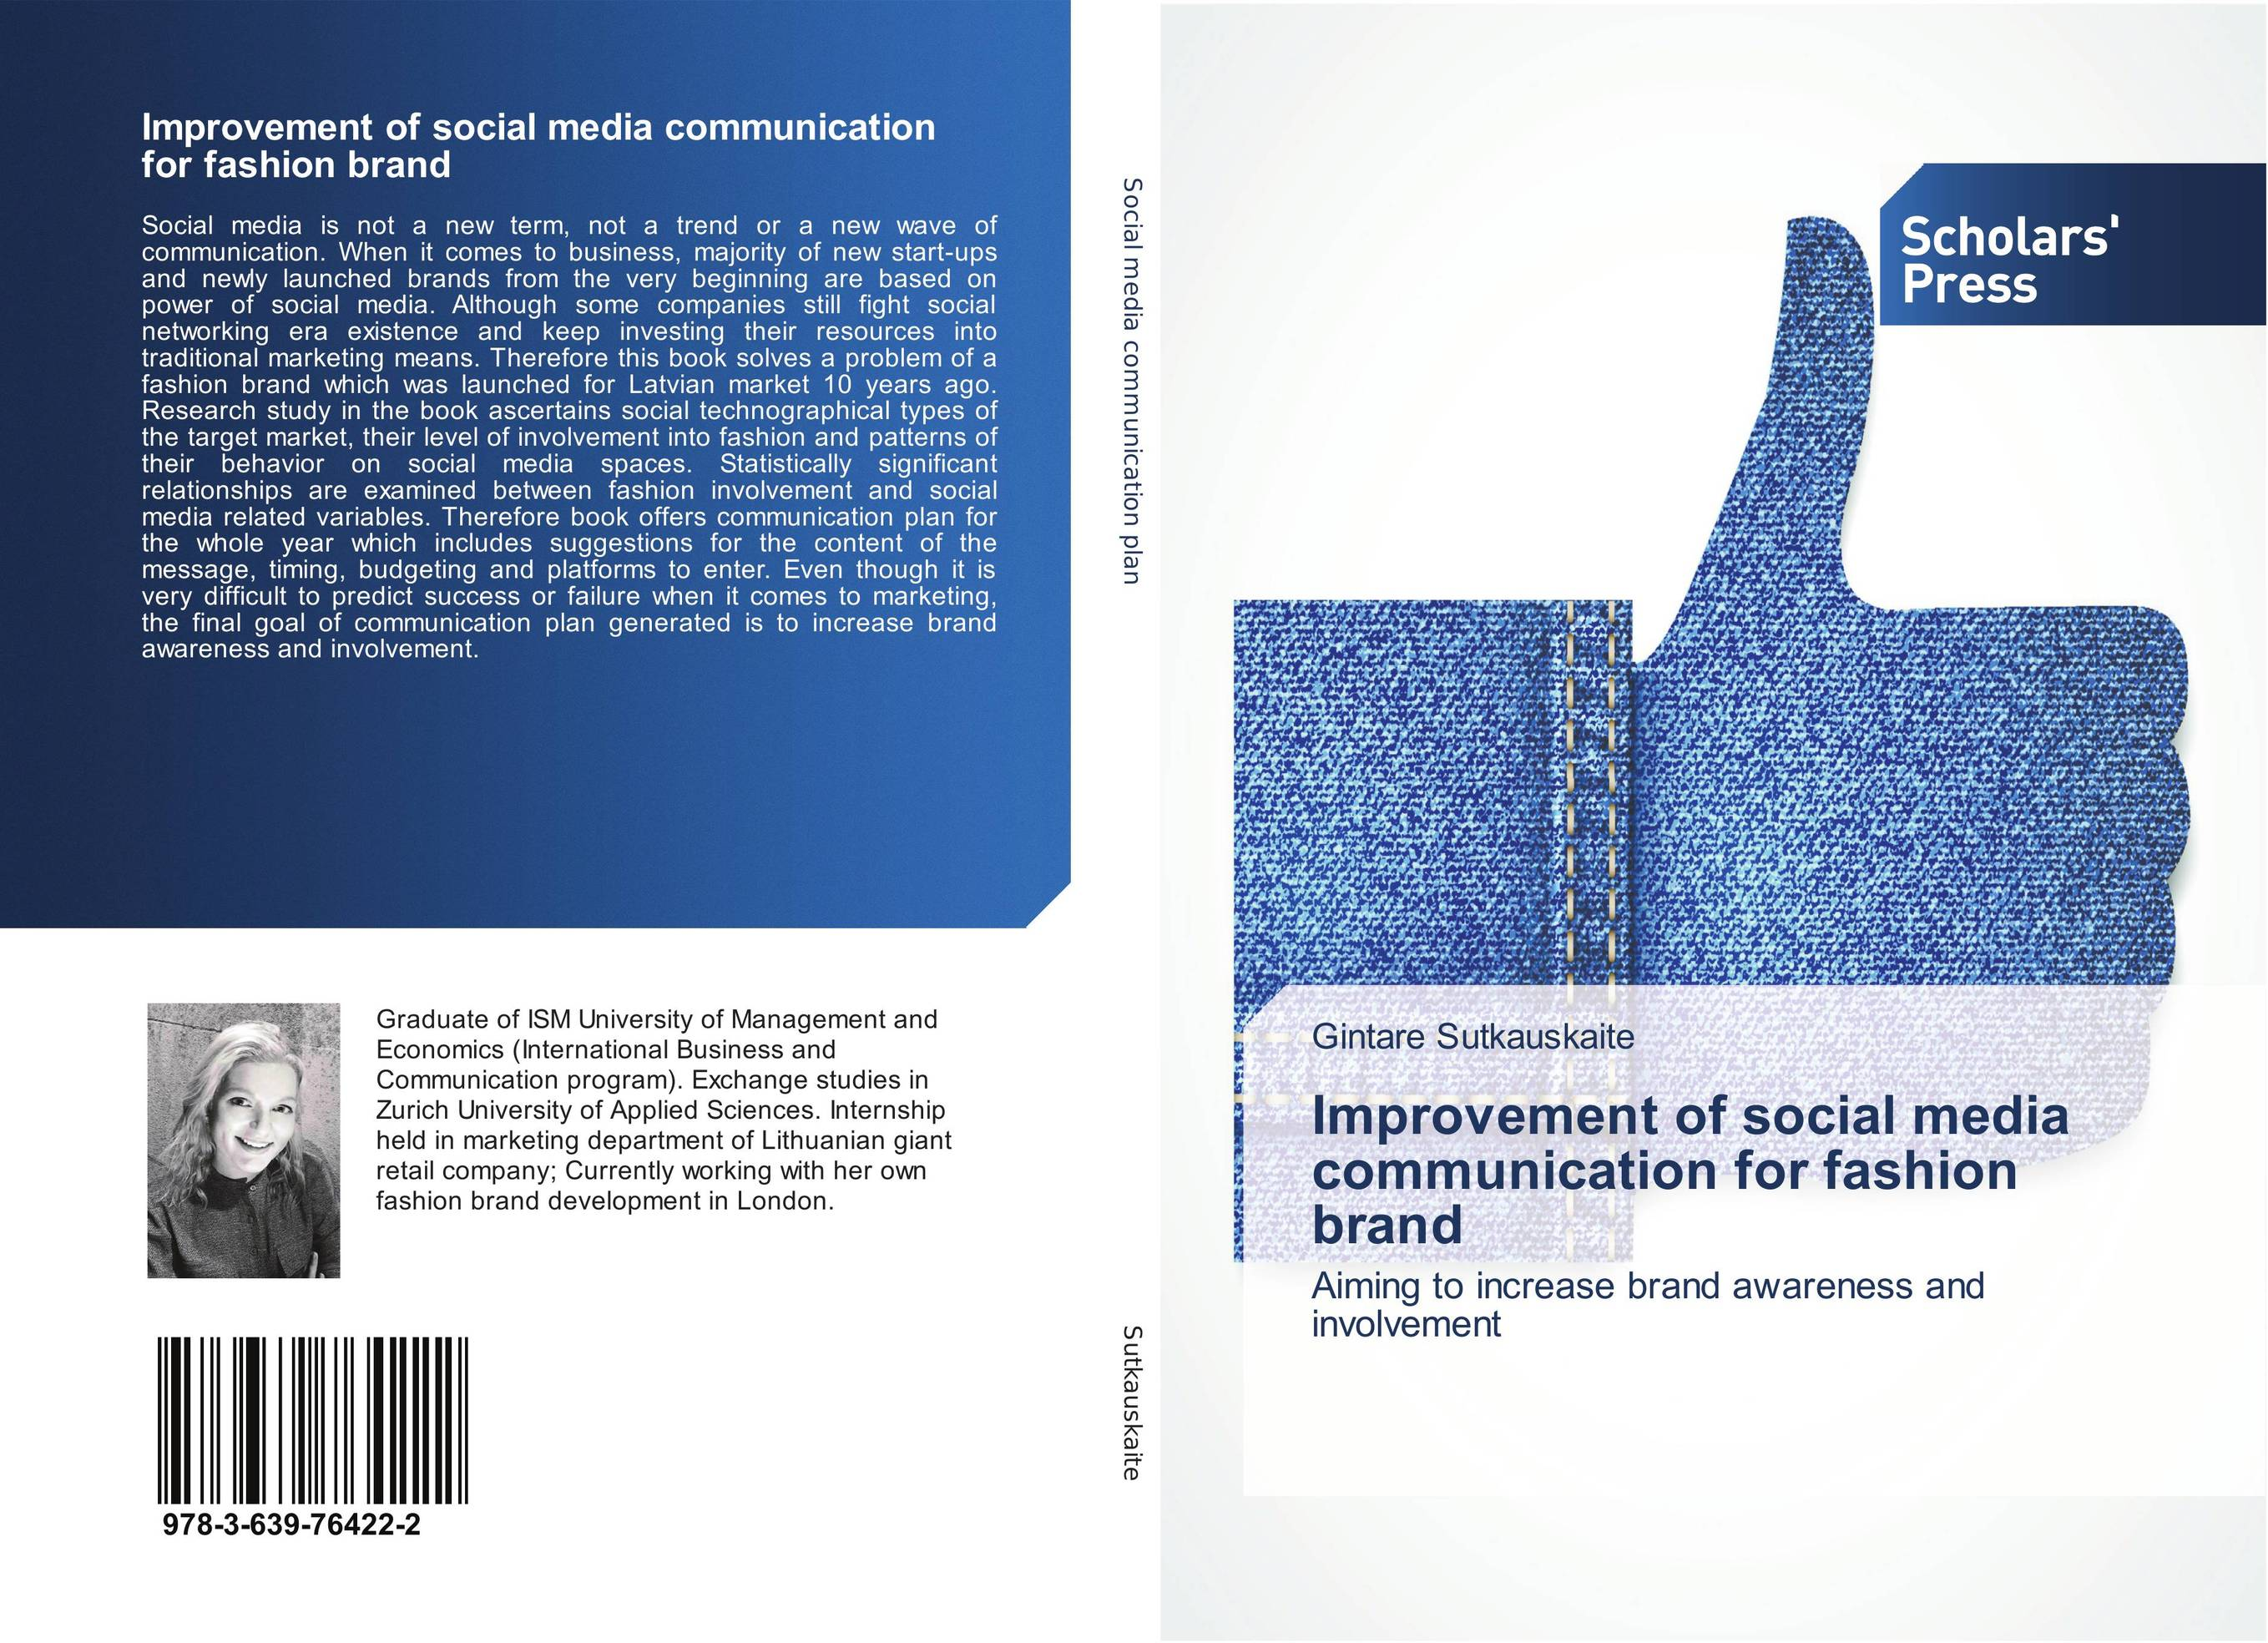 Improvement of social media communication for fashion brand